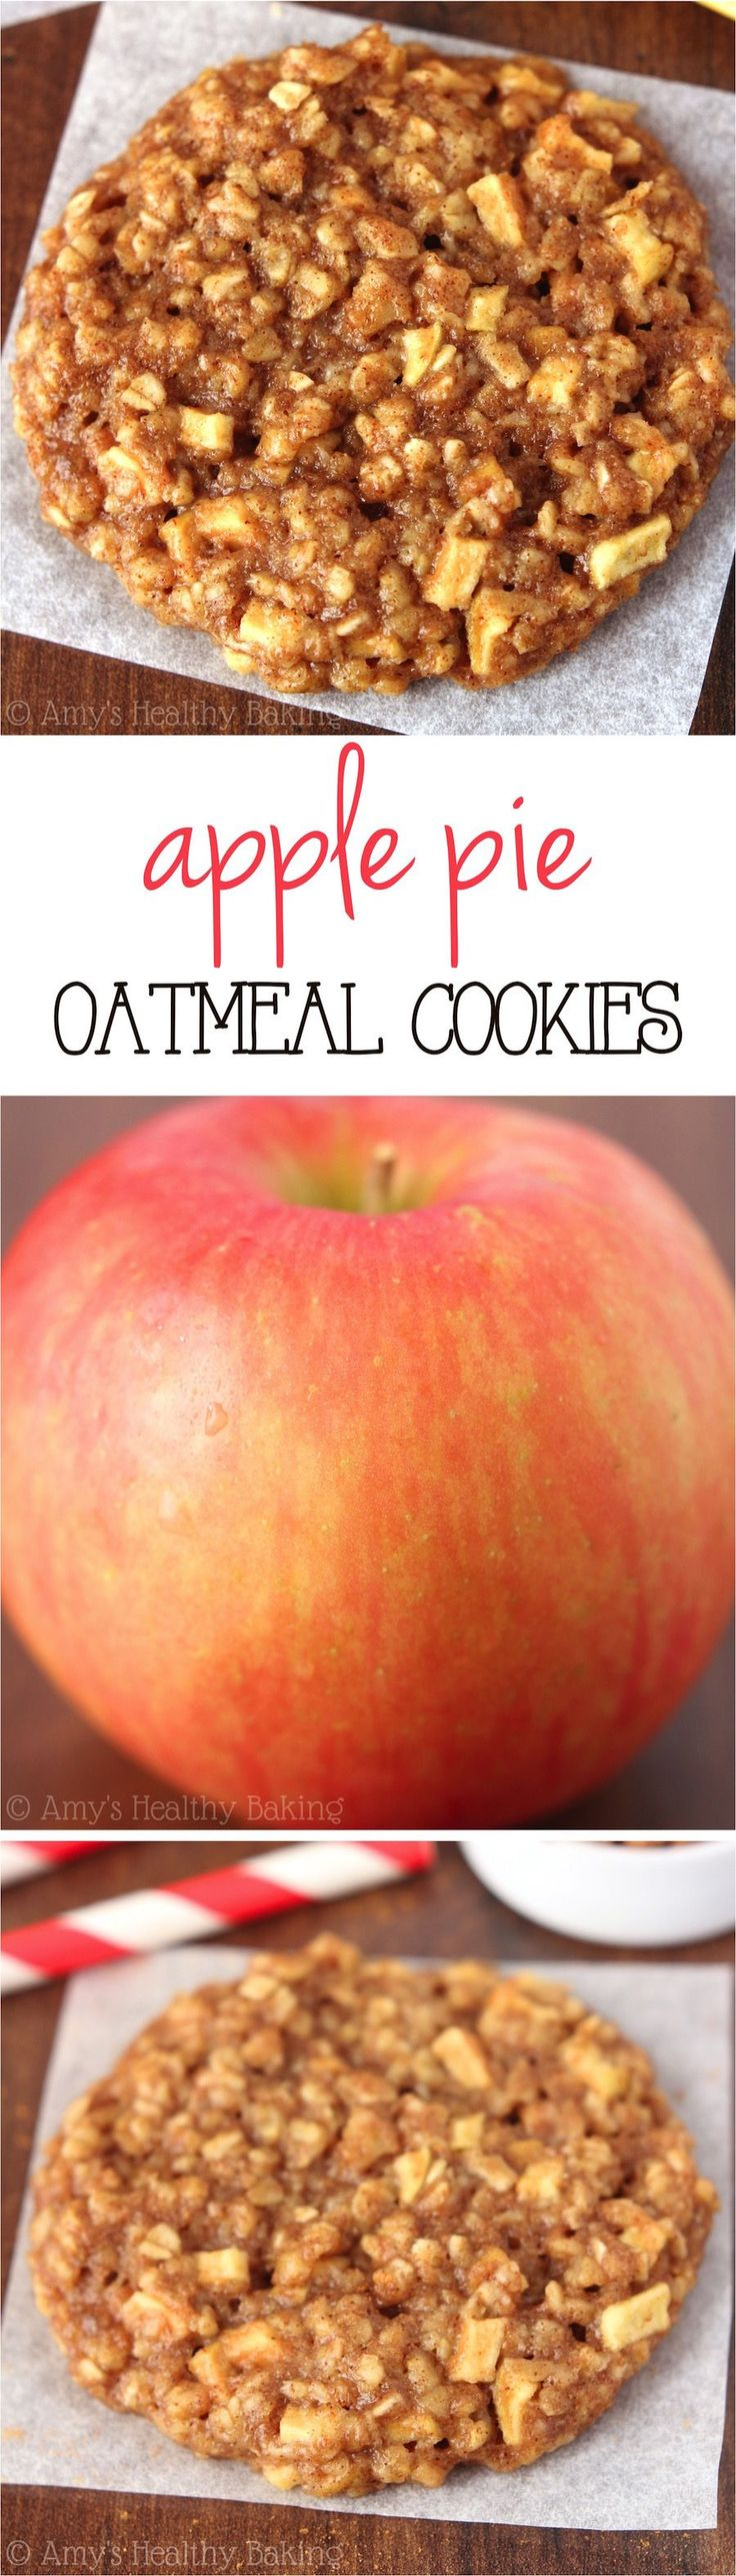 Apple Pie Oatmeal Cookies | Amy's Healthy Baking